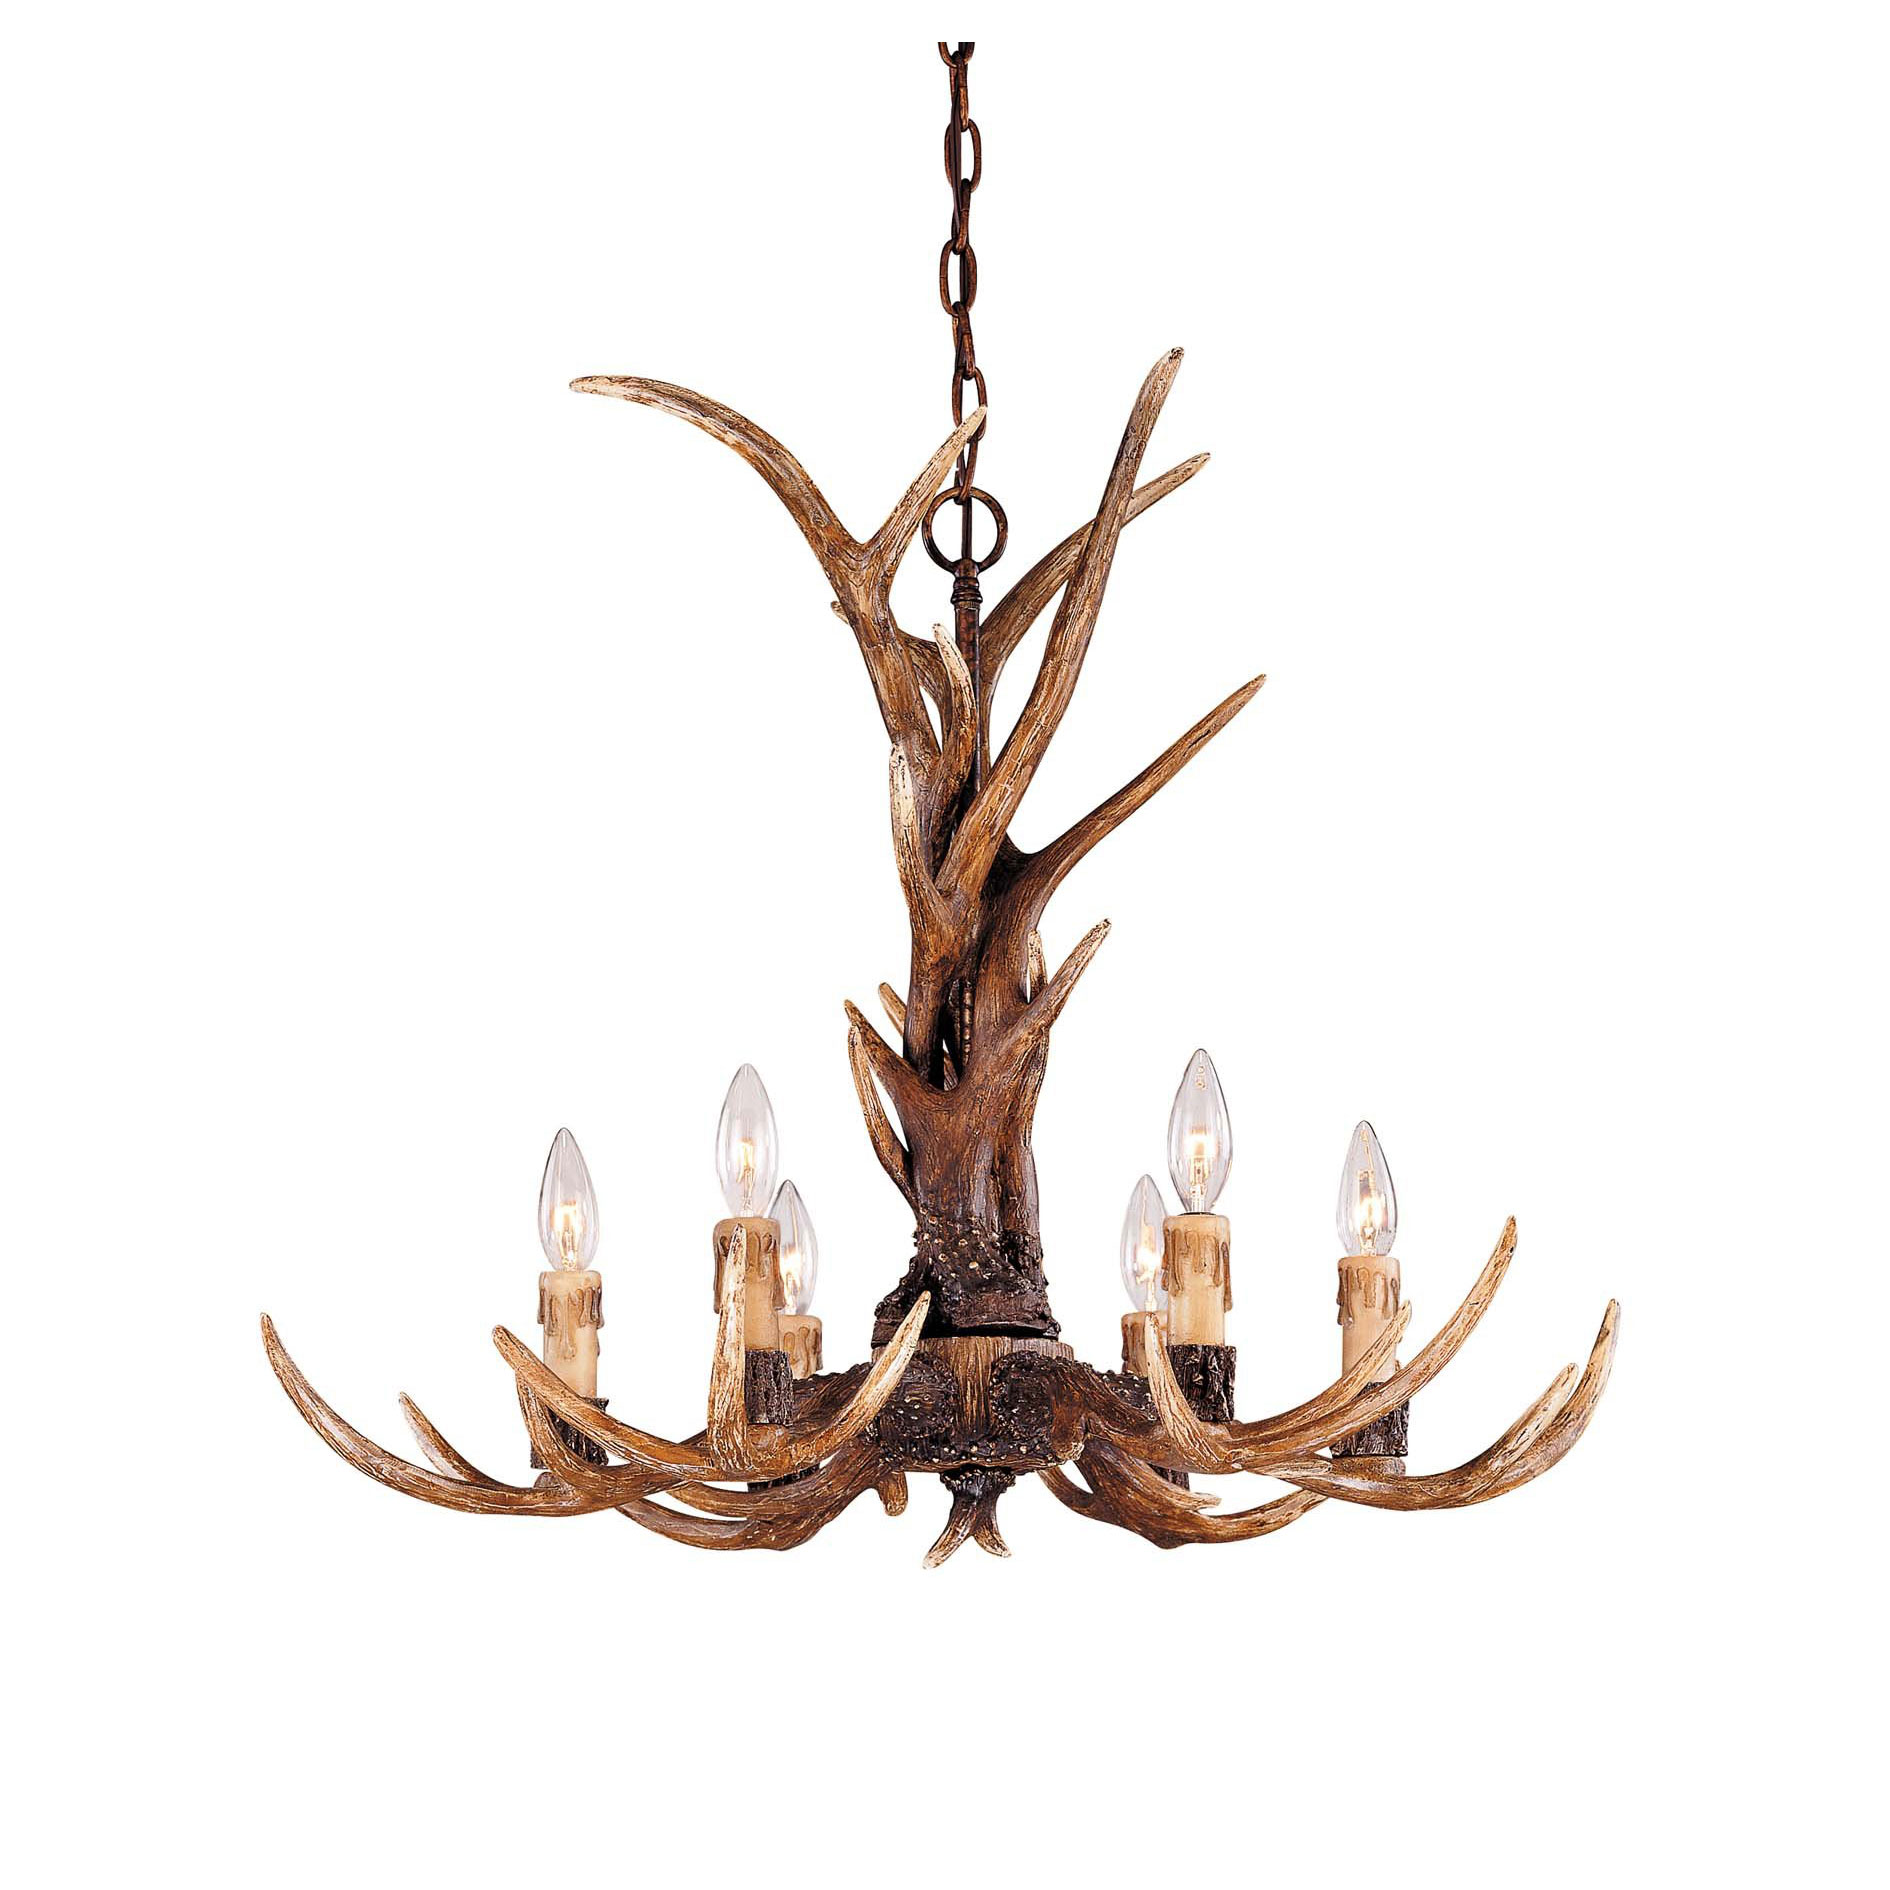 Blue ridge antler chandelier by savoy house 1 40017 6 56 mozeypictures Choice Image